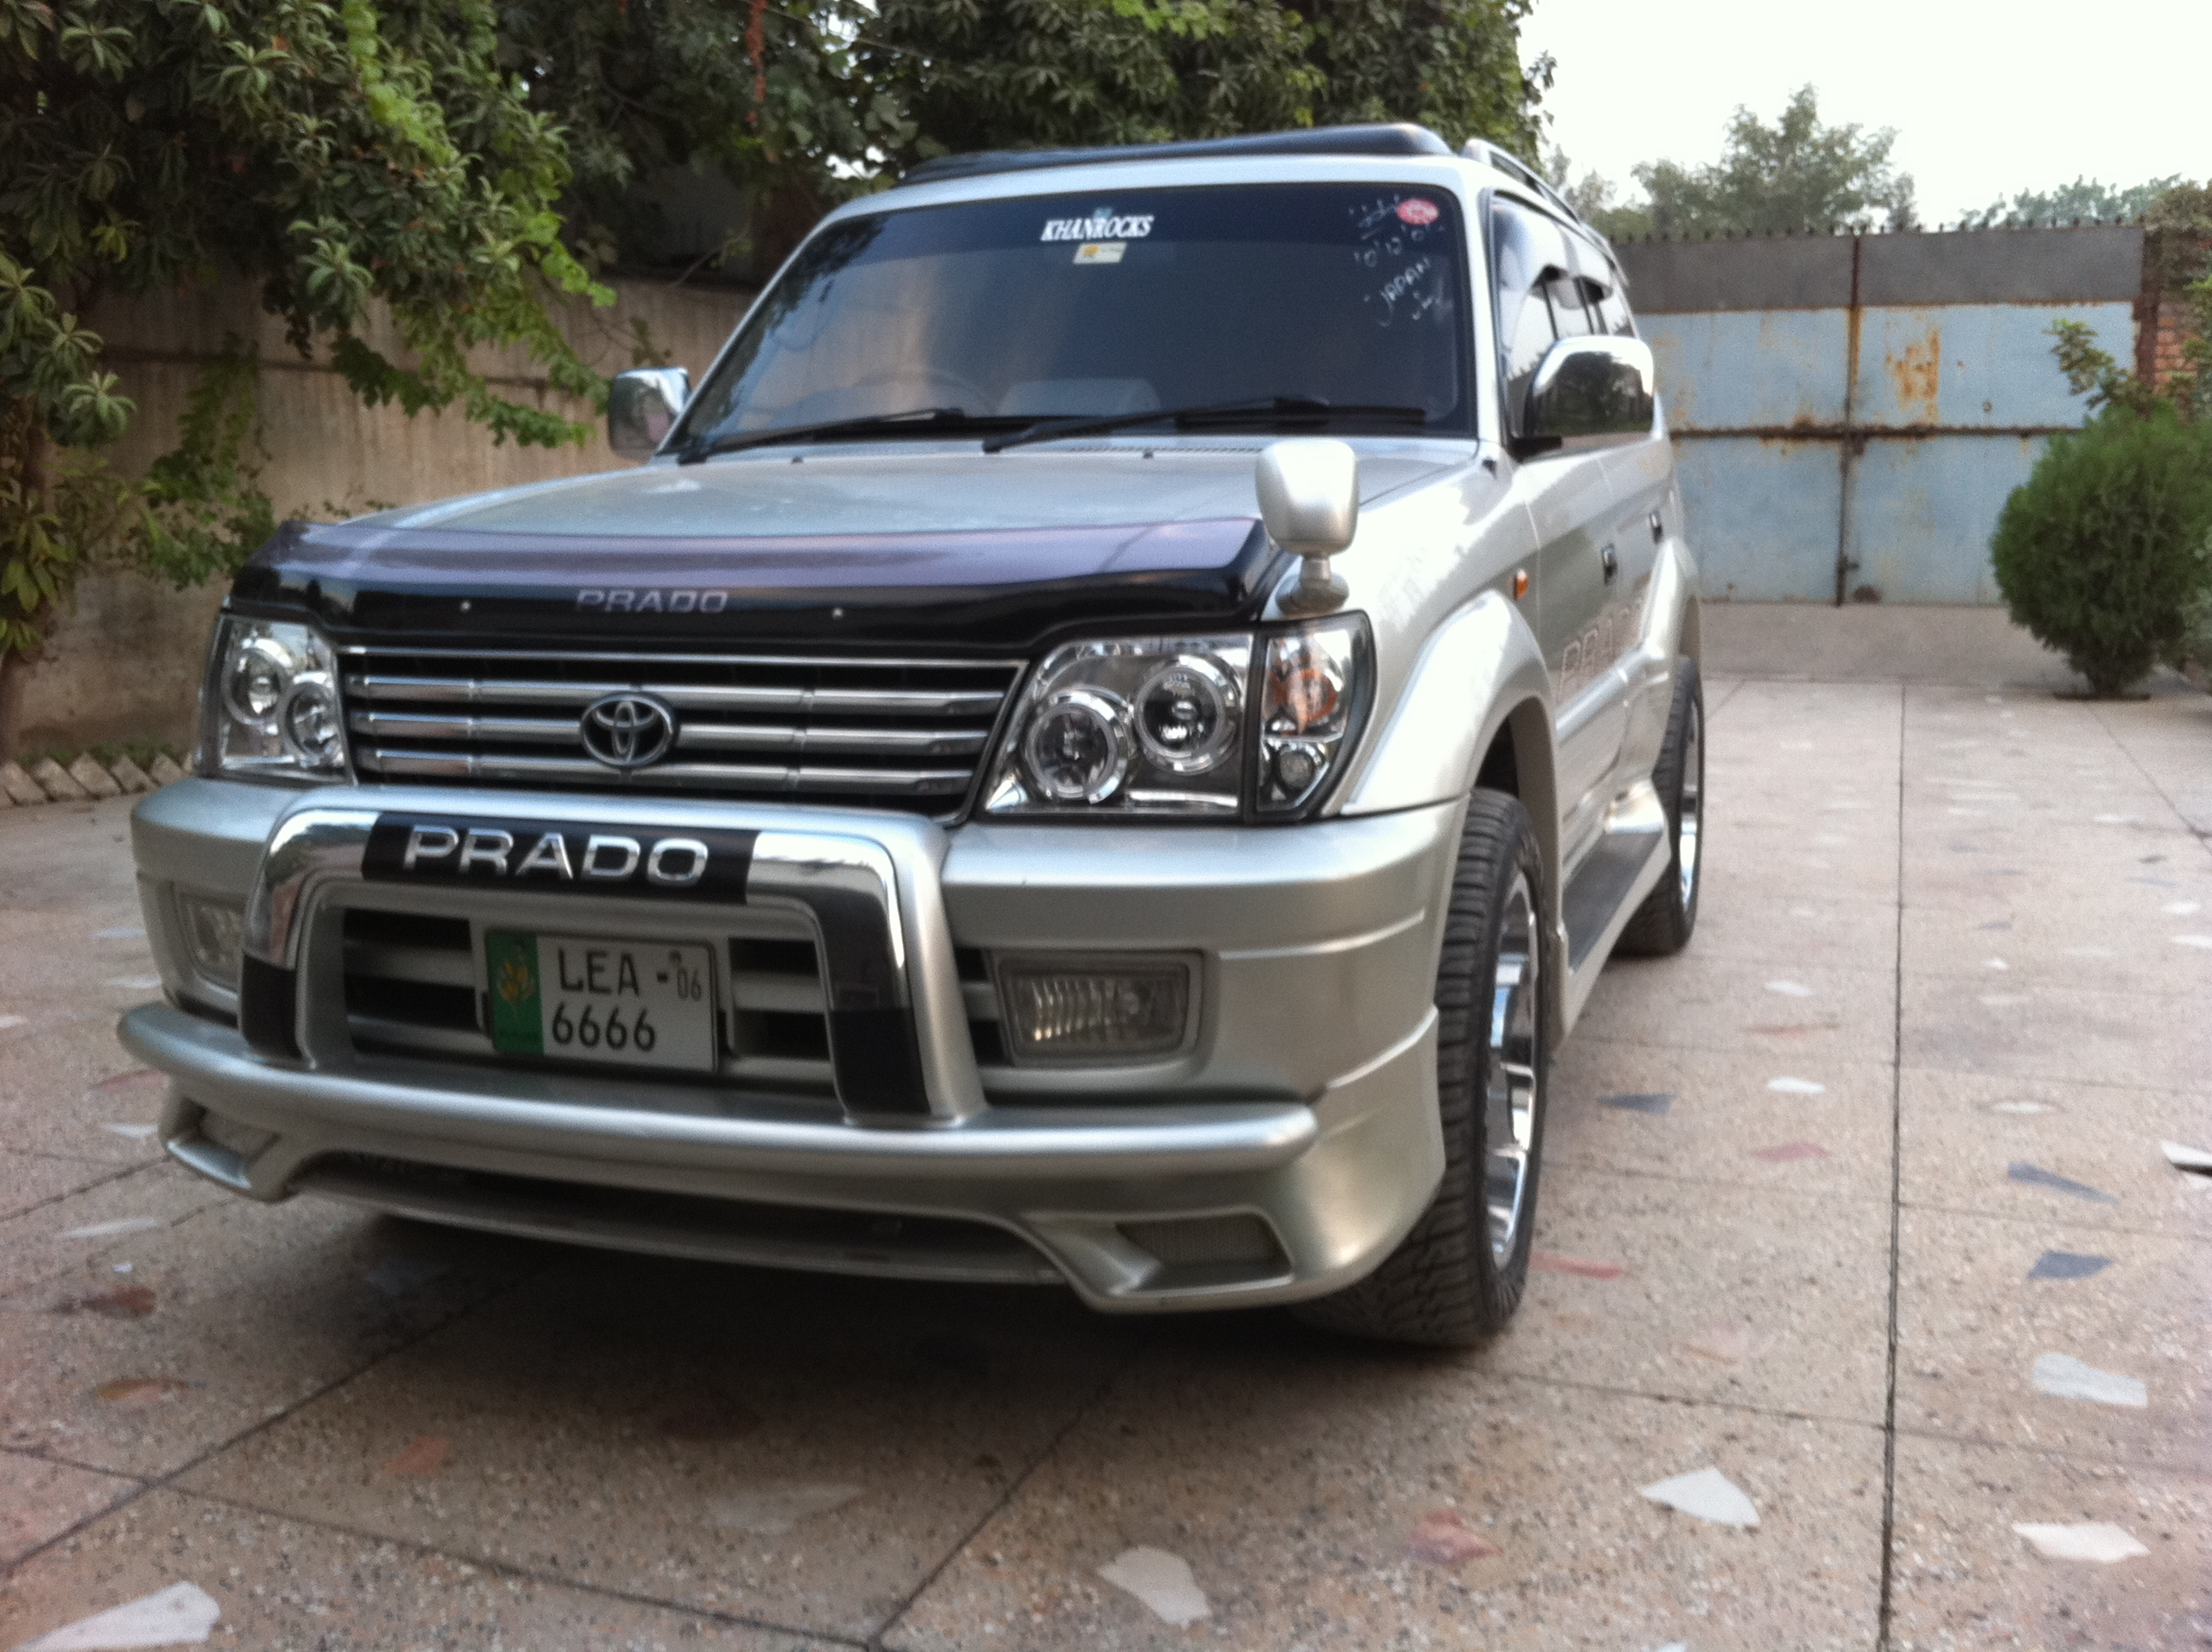 Toyota Land Cruiser Prado 1996 photo - 3